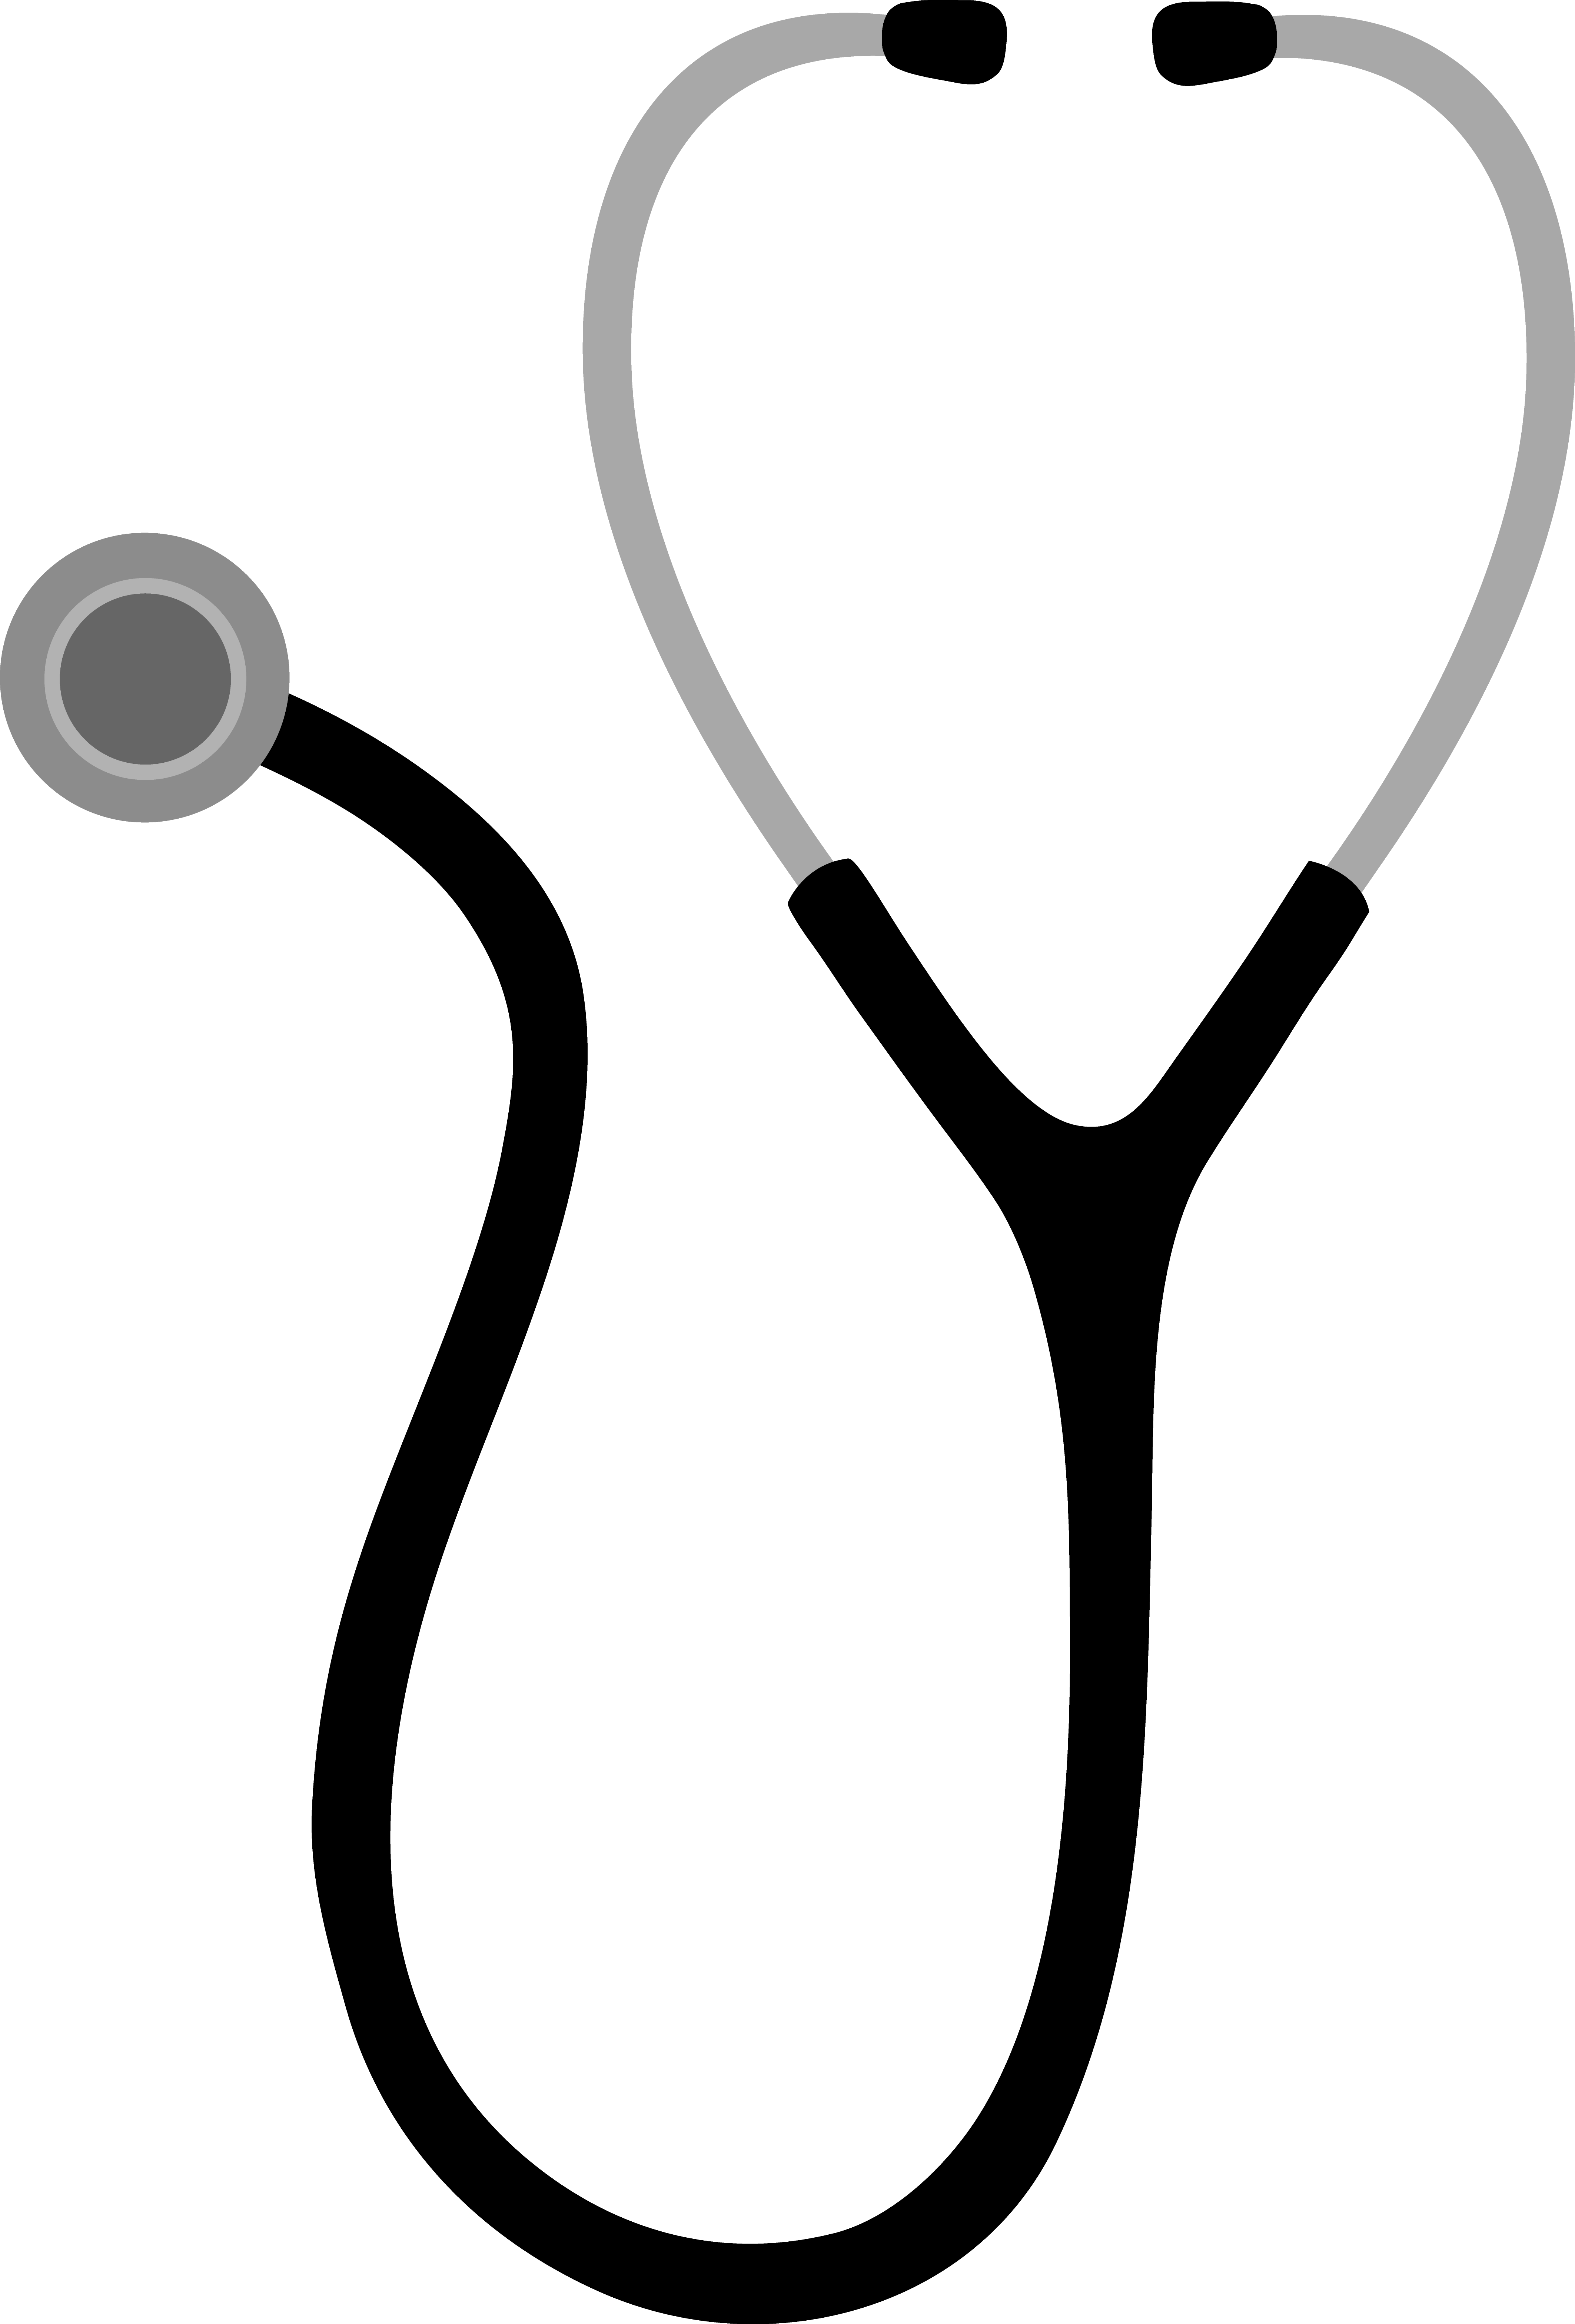 Stethoscope clipart png. Google search kids stuff